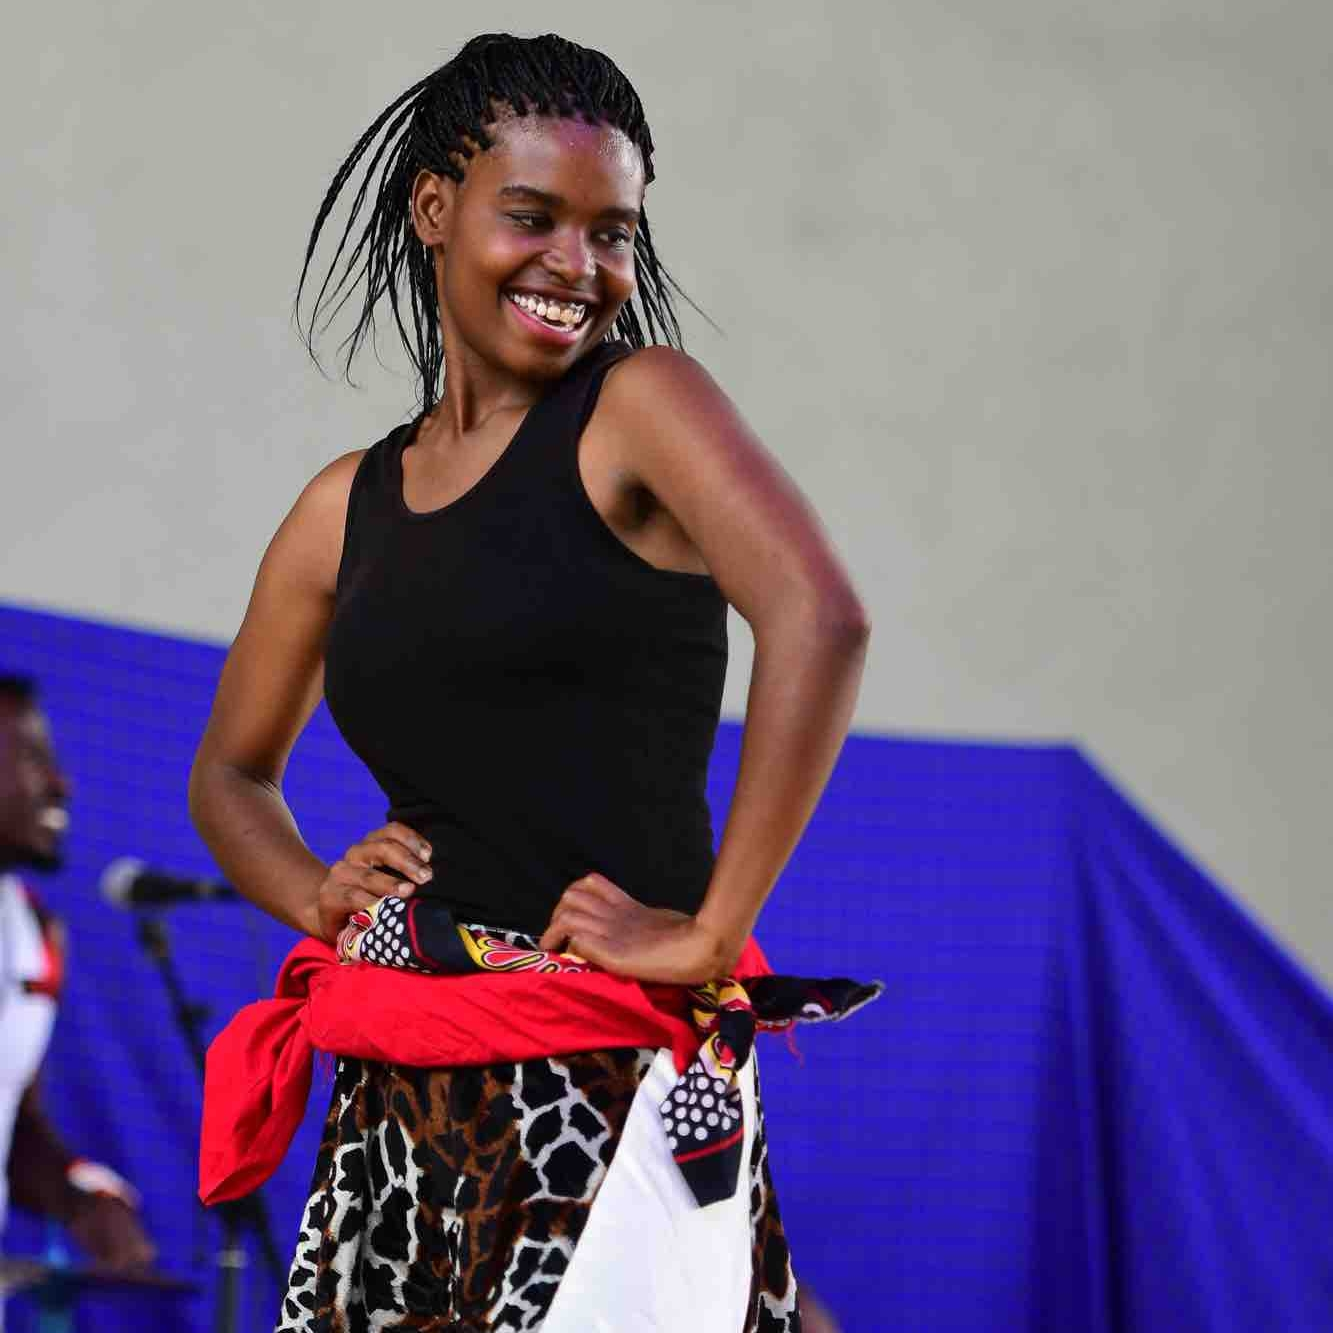 JOANITHA EMMANUEL - Joanitha learned to dance and drum from the music department at Tumaini University. She currently teaches the students at Uraki Secondary School in the CAC outreach program. She also studied violin from 2007-2017 with Carol Stubbs and occasionally performs with the CAC fusion band.